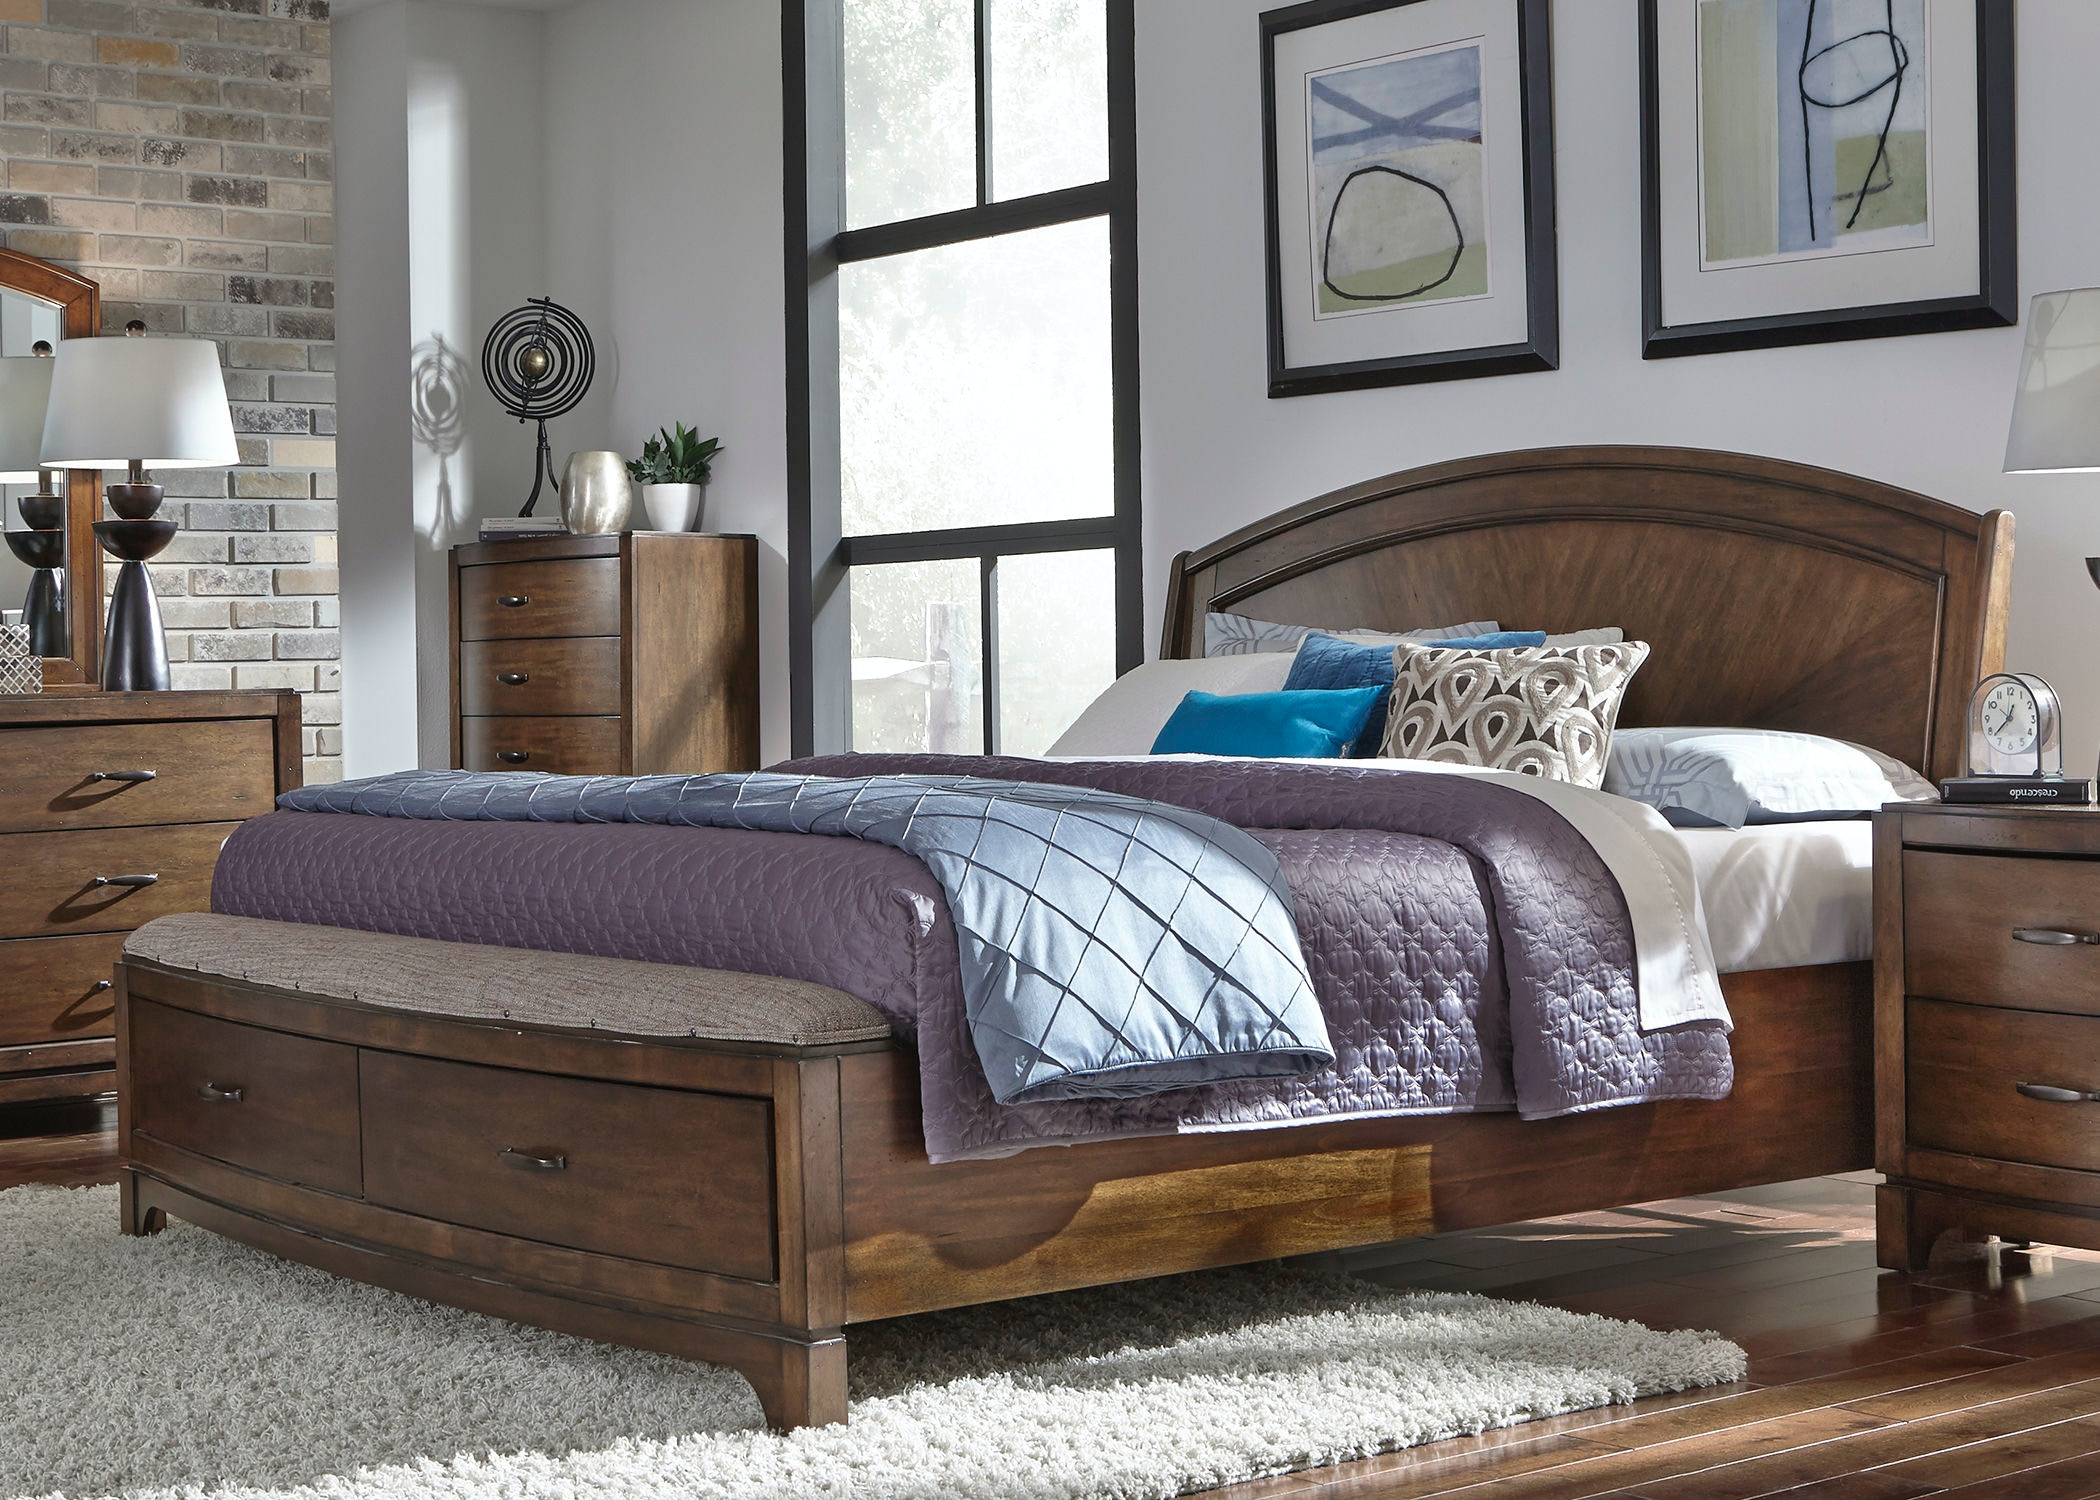 Liberty Furniture Bedroom Queen Panel Storage Bed 705 BR QPBS   Smith  Village Home Furniture   Jacobus And York, PA